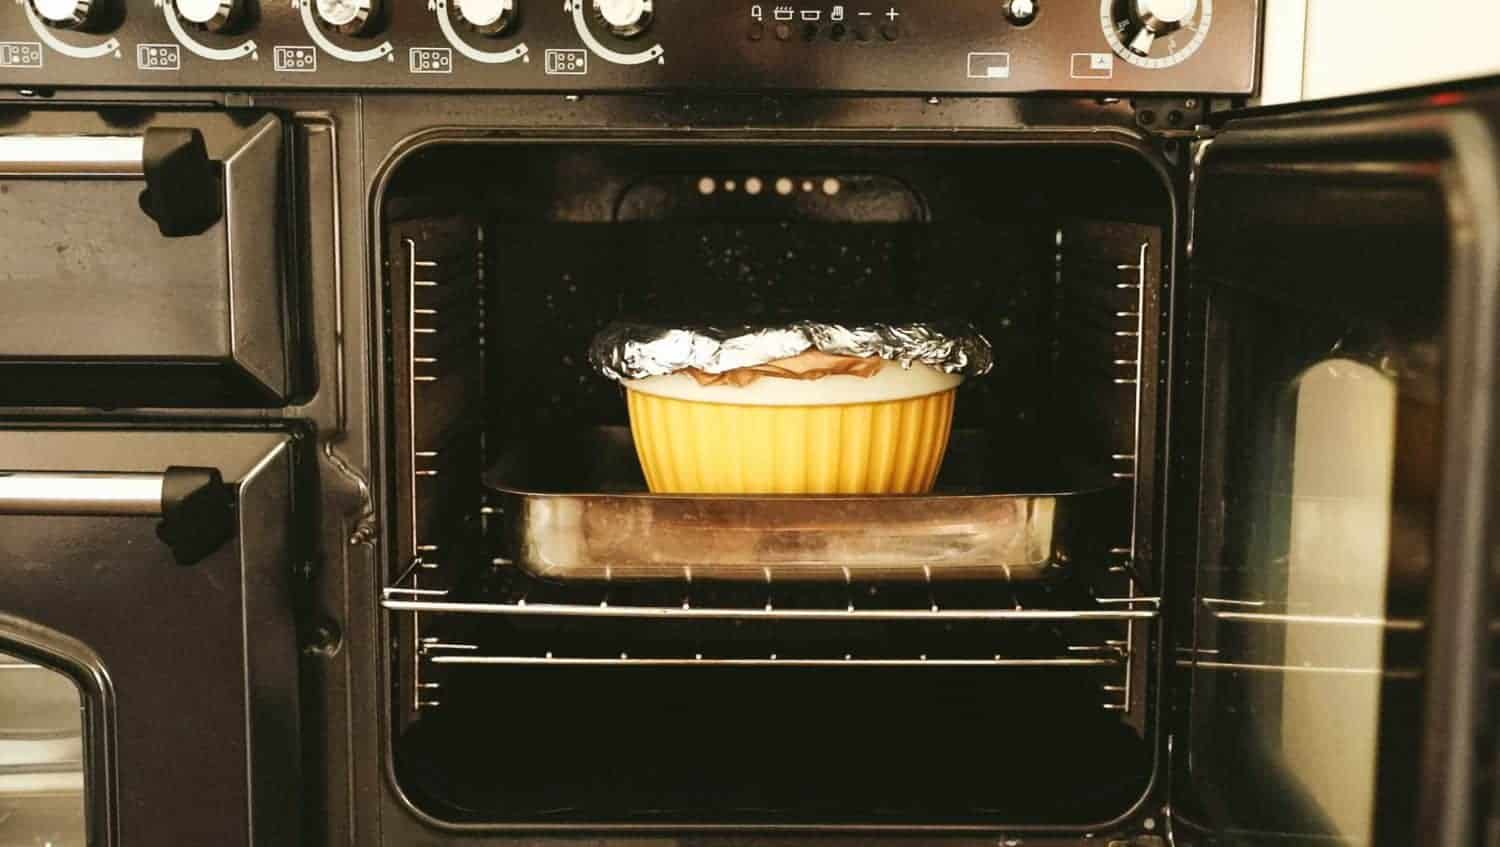 An oven with the door open and a roasting tin and pudding bowl on the oven shelf.